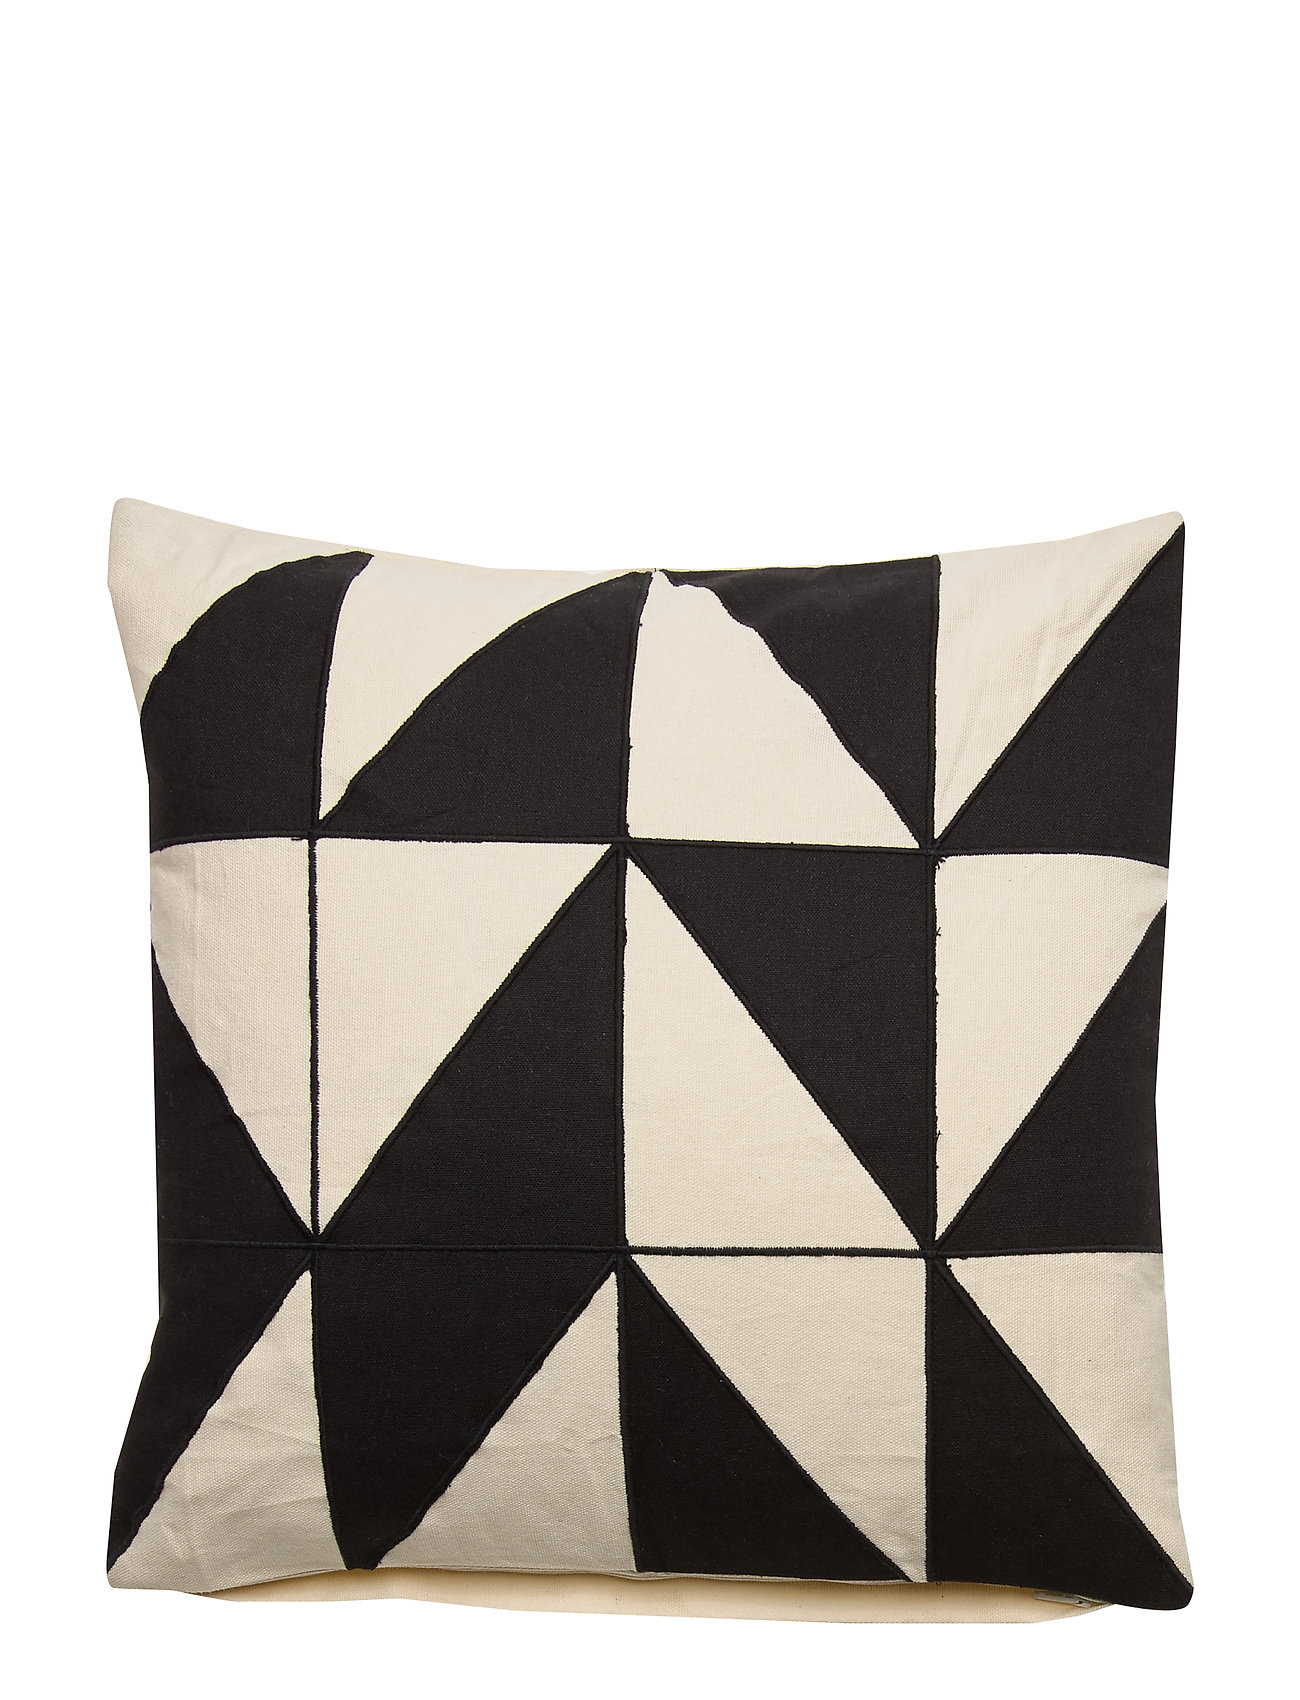 DAY Home Day Chess Cushion Cover - BLACK/WHITE